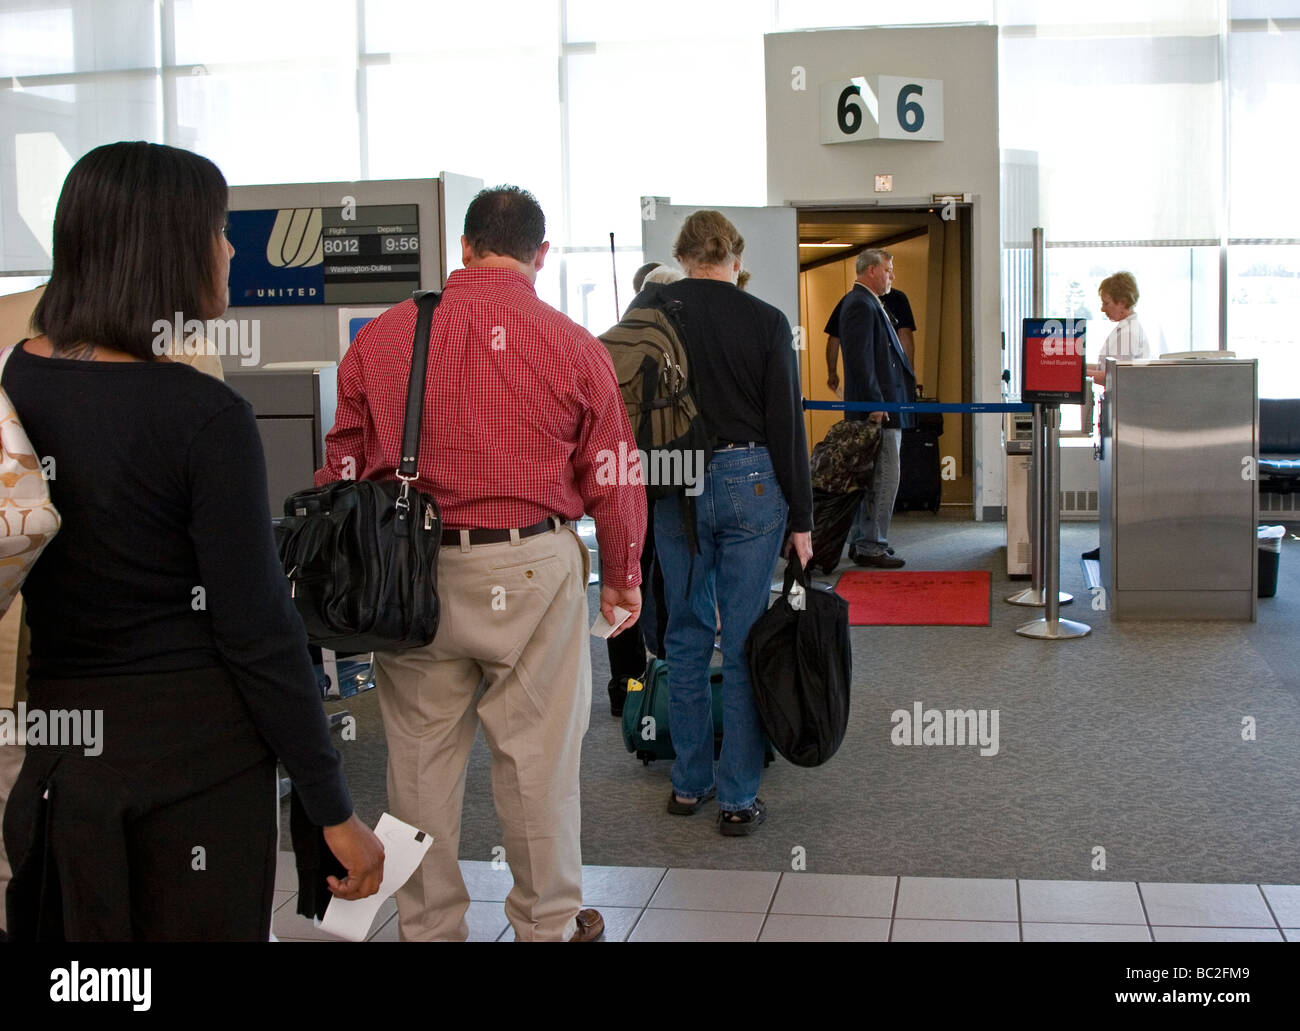 Passengers line up at airport gate to board plane Stock Photo